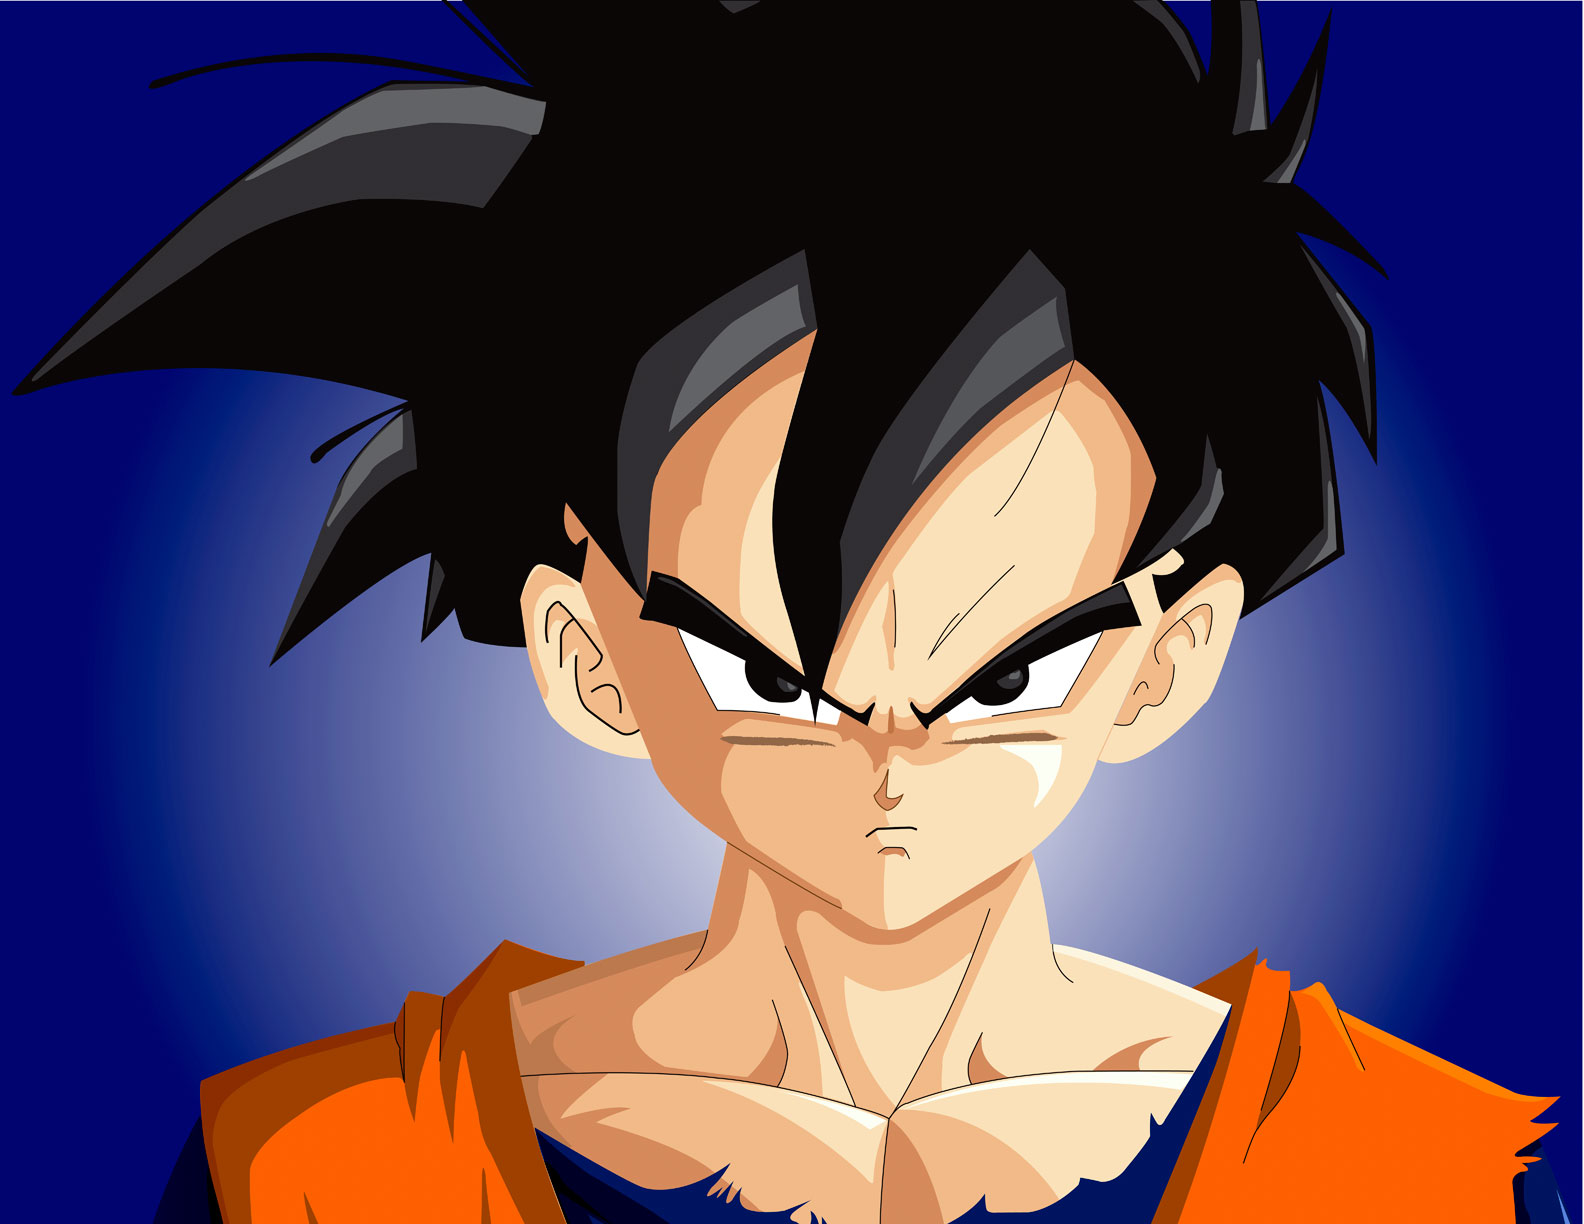 Dragon ball z wallpapers teen gohan - Dragon ball z gohan images ...